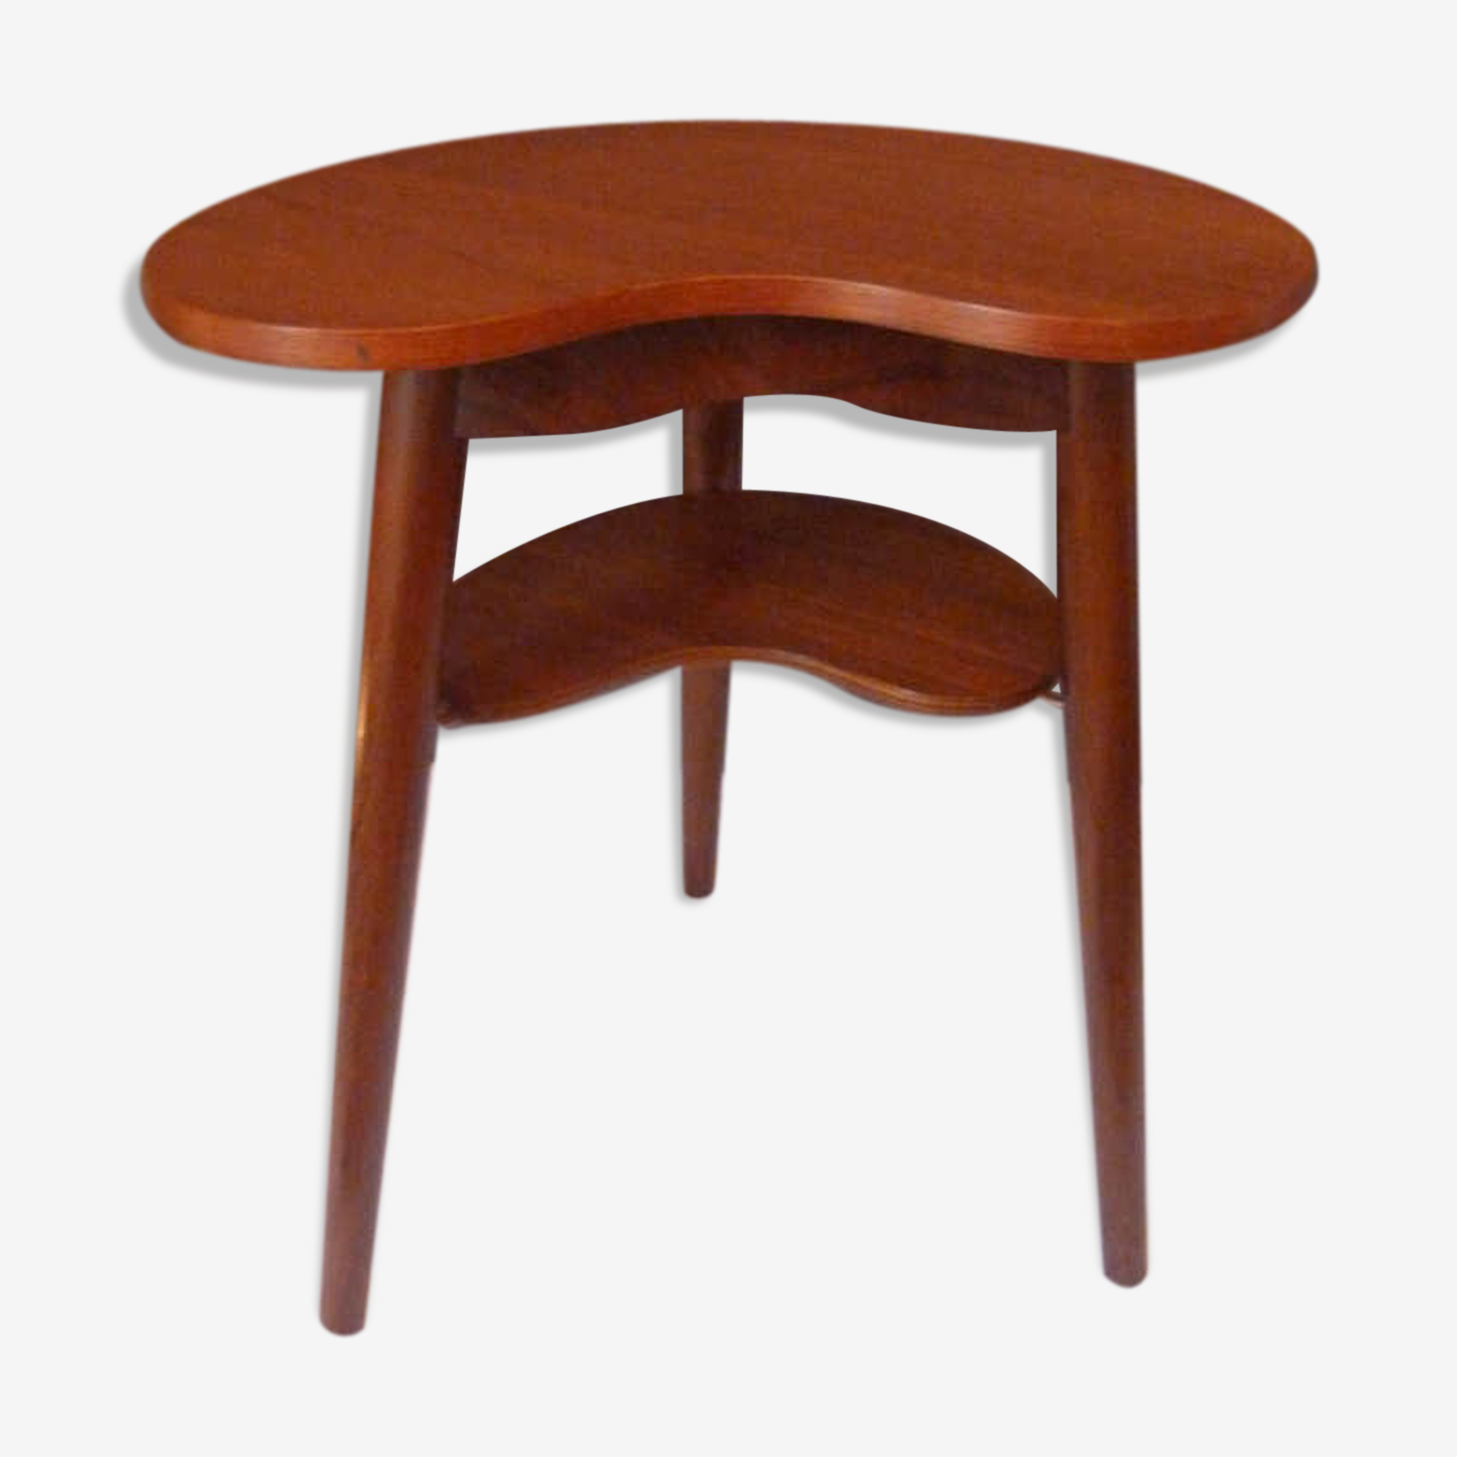 Table haricot scandinave